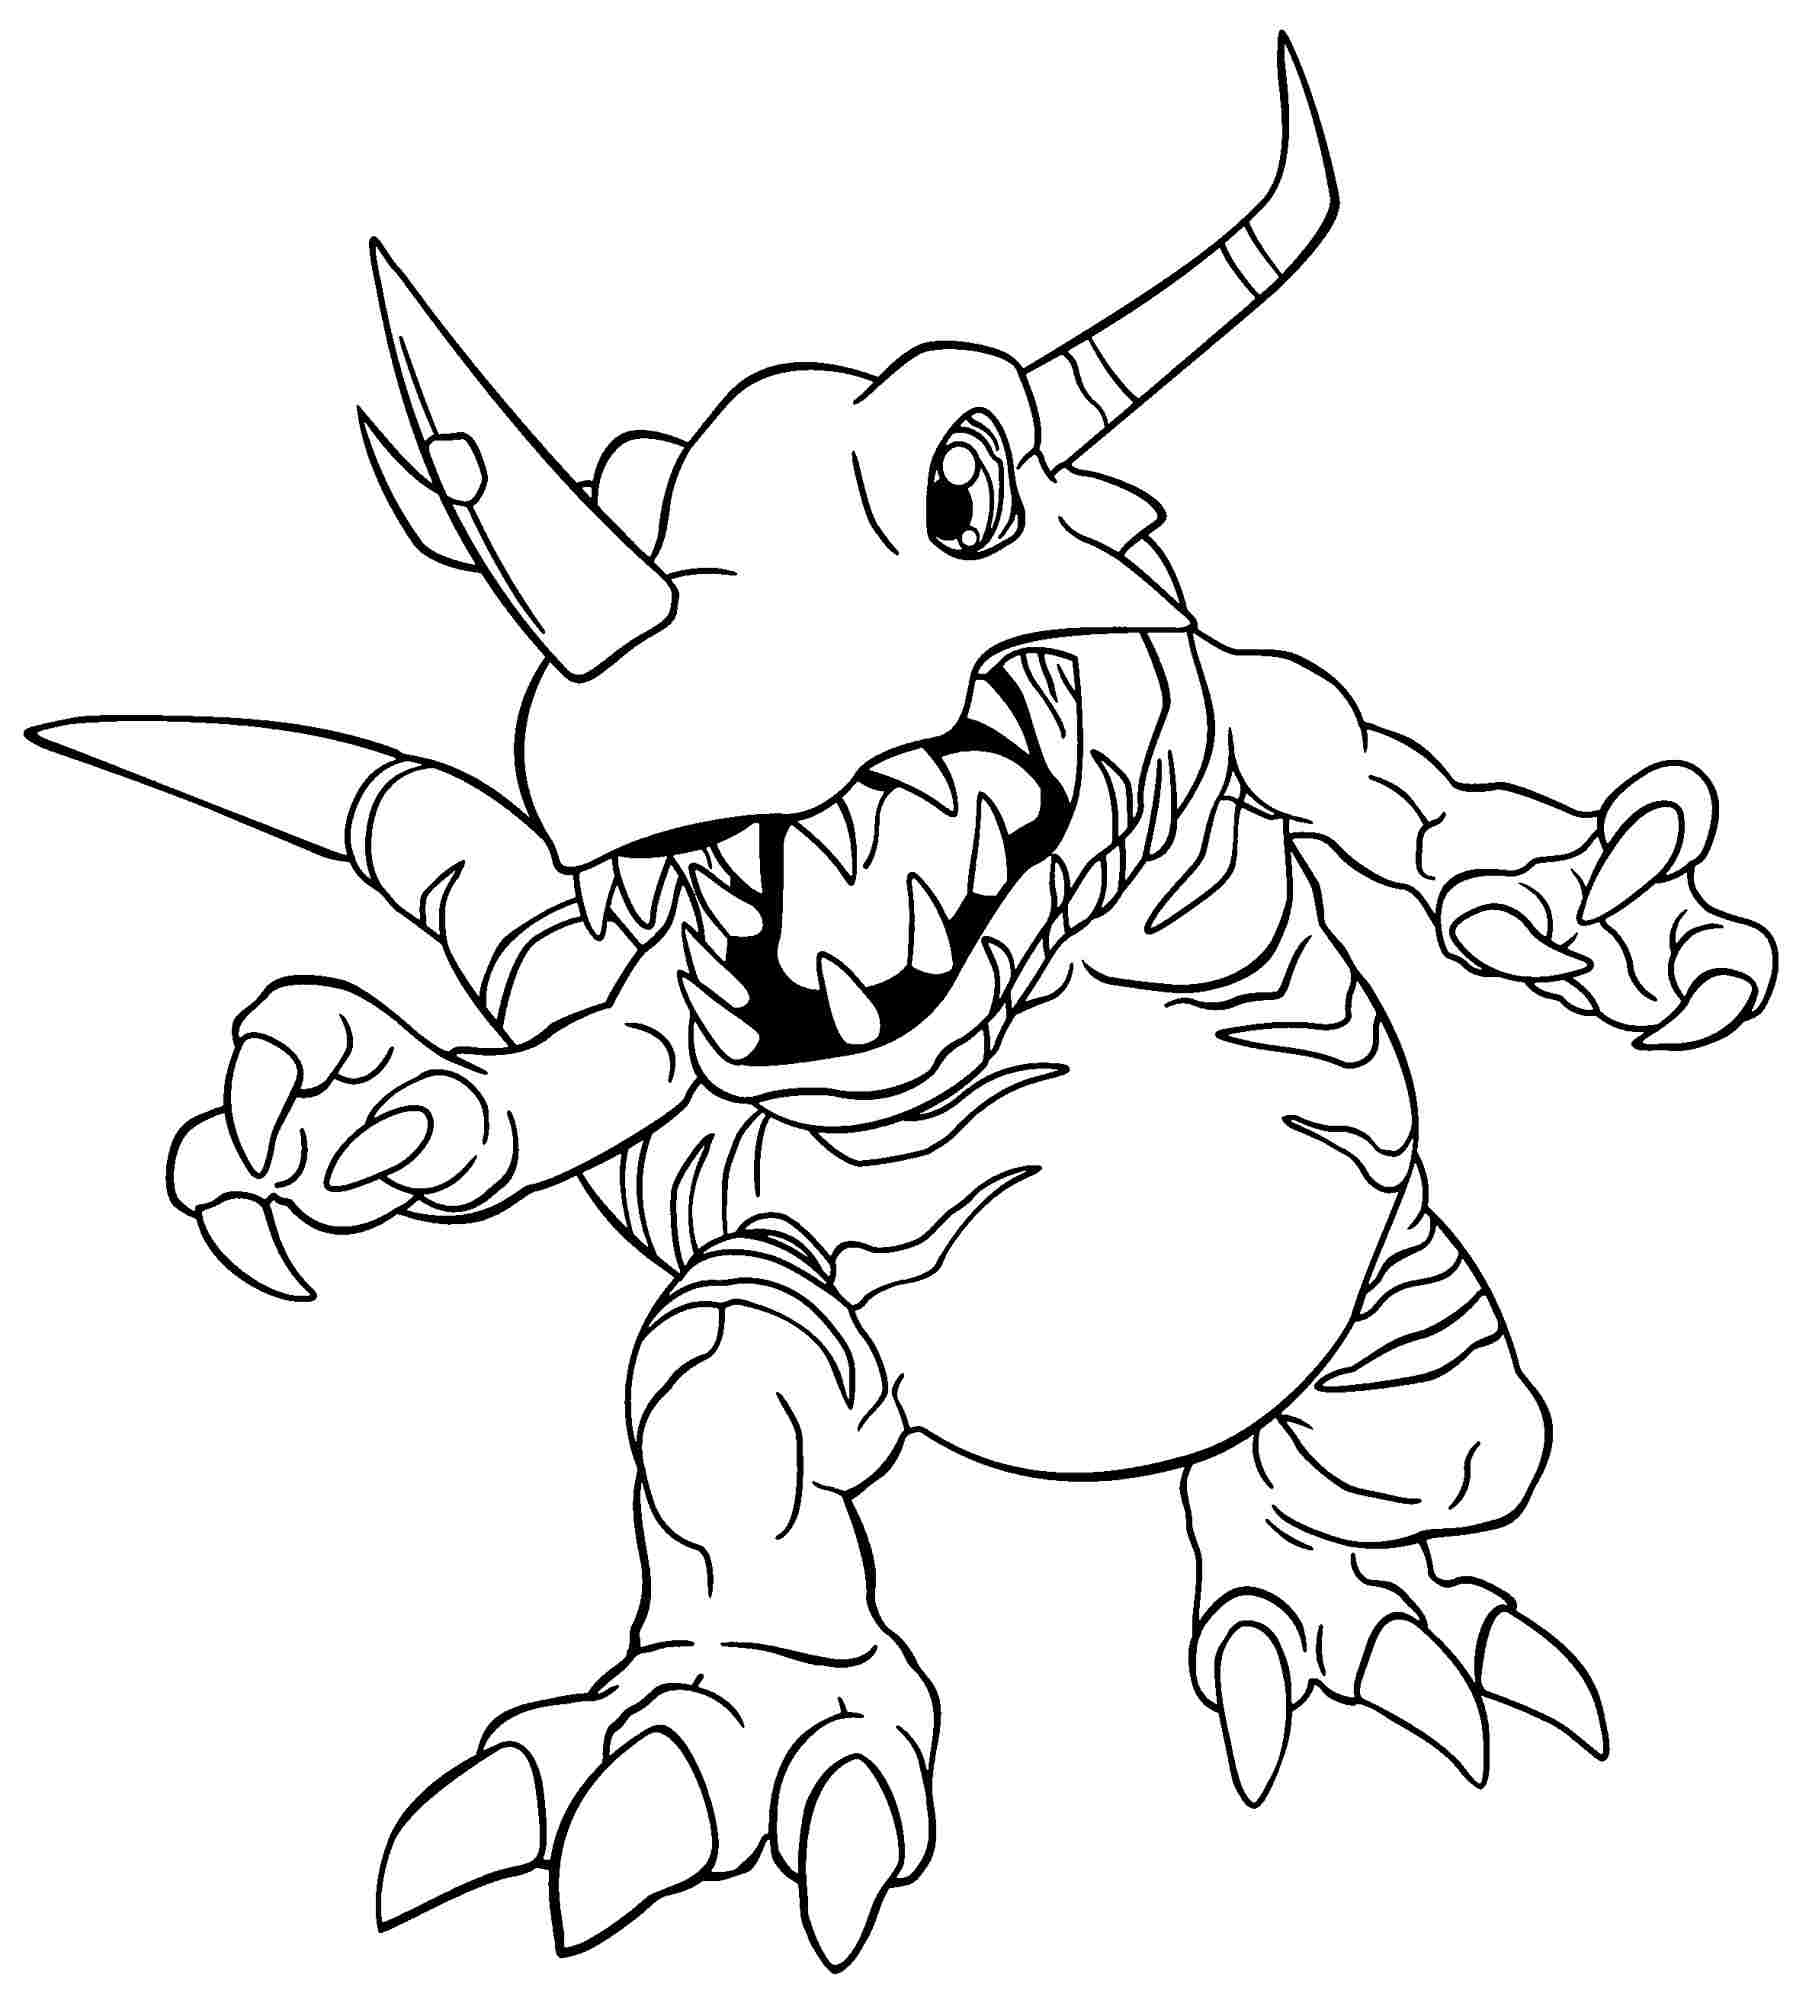 digimon coloring pages printable coloring page digimon coloring pages 215 pages printable coloring digimon